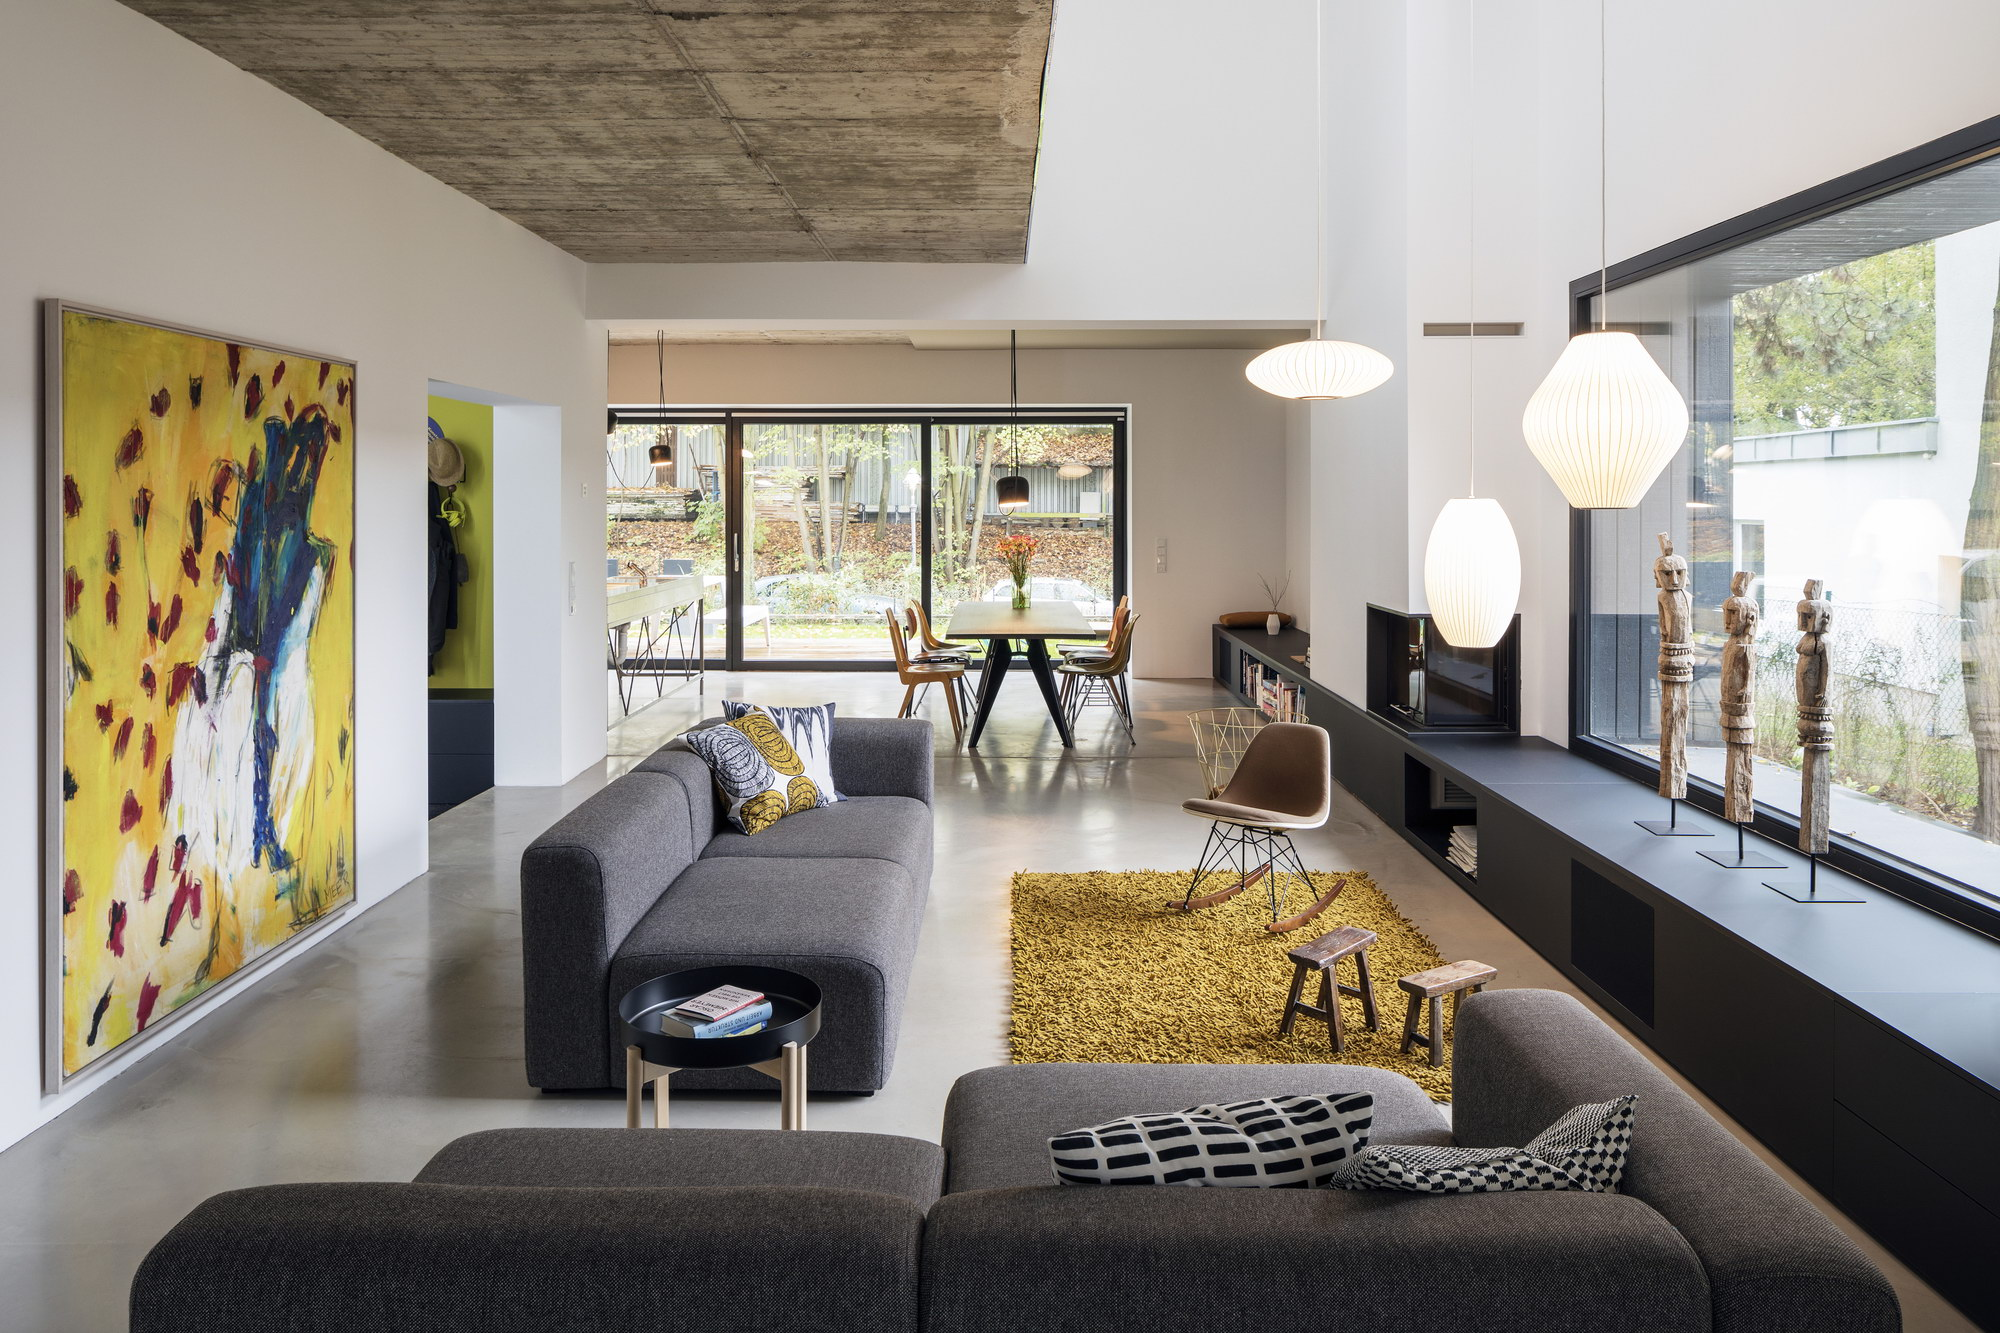 A28 House   SEHW Architektur turned Industrial Building into Home